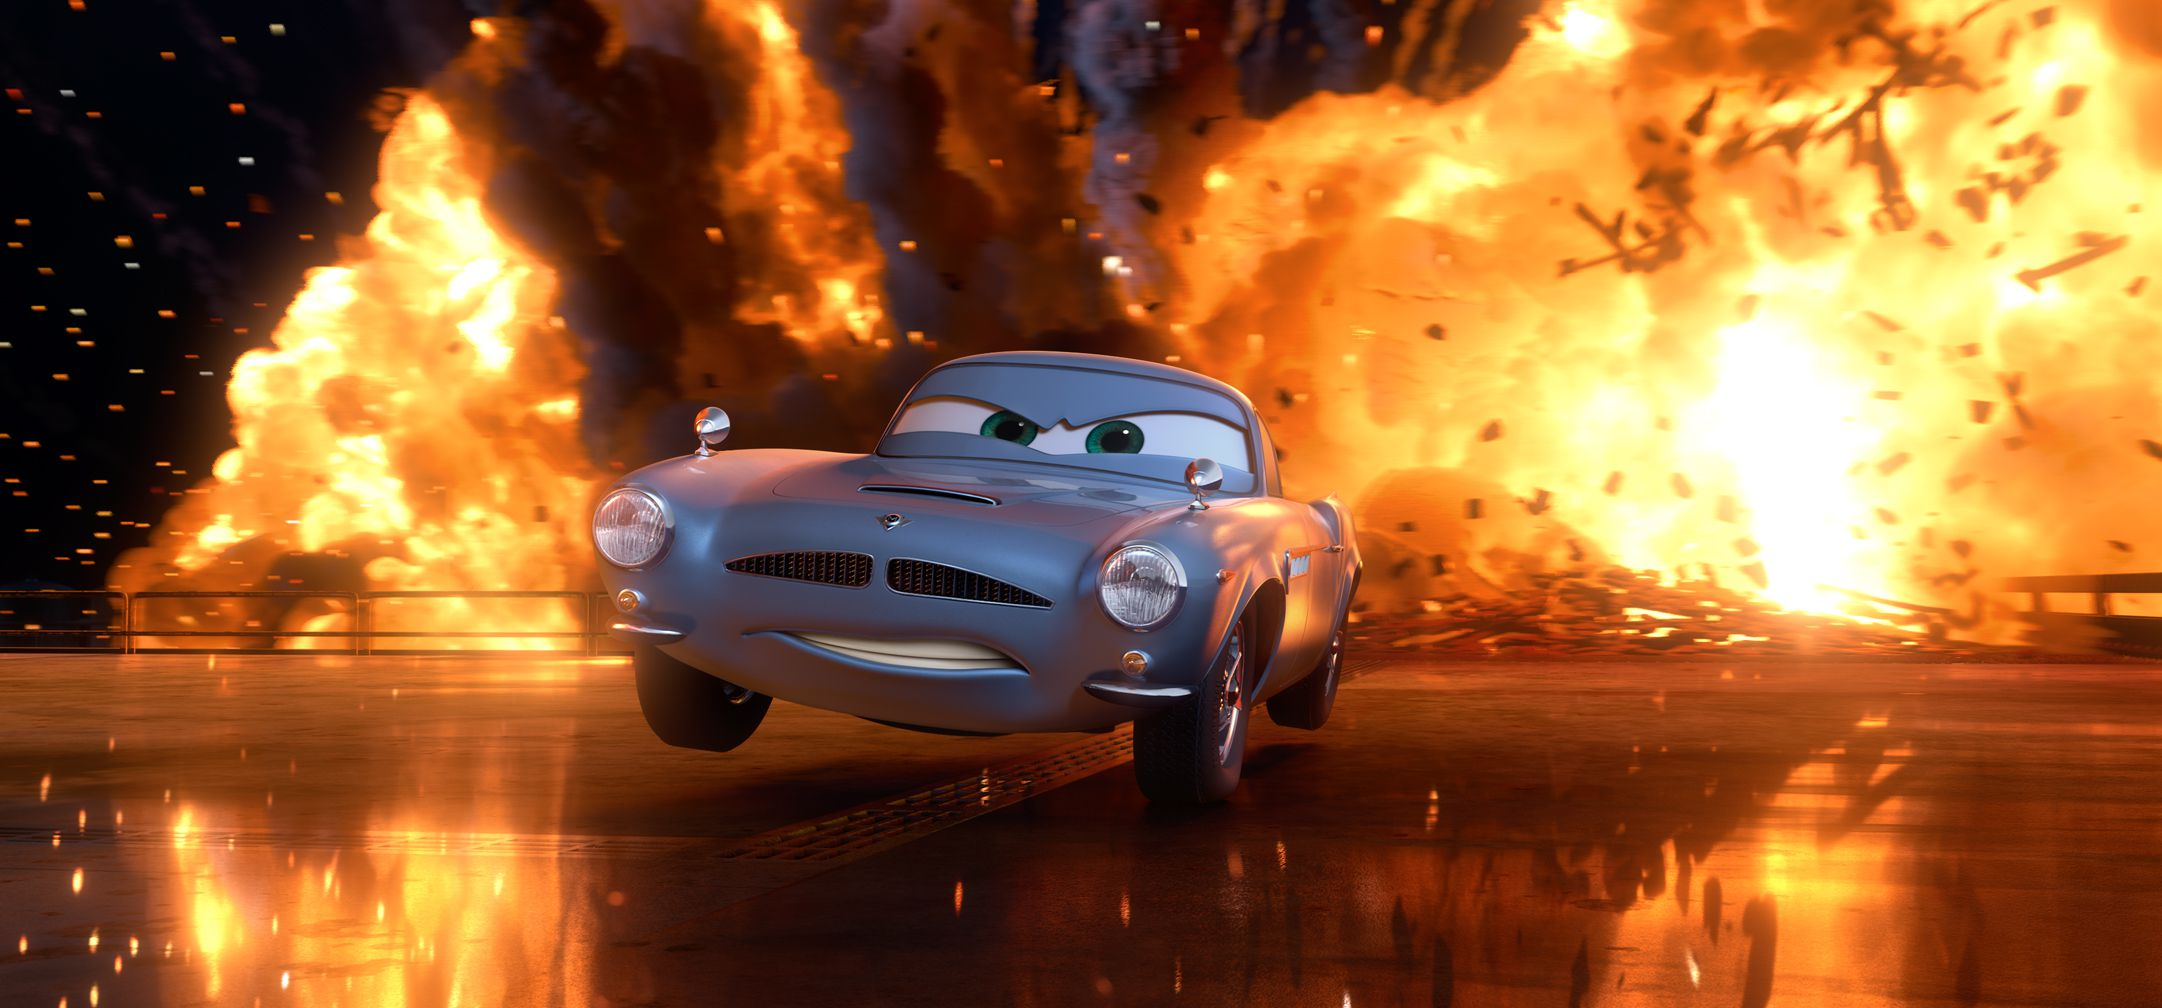 An image from Cars 2